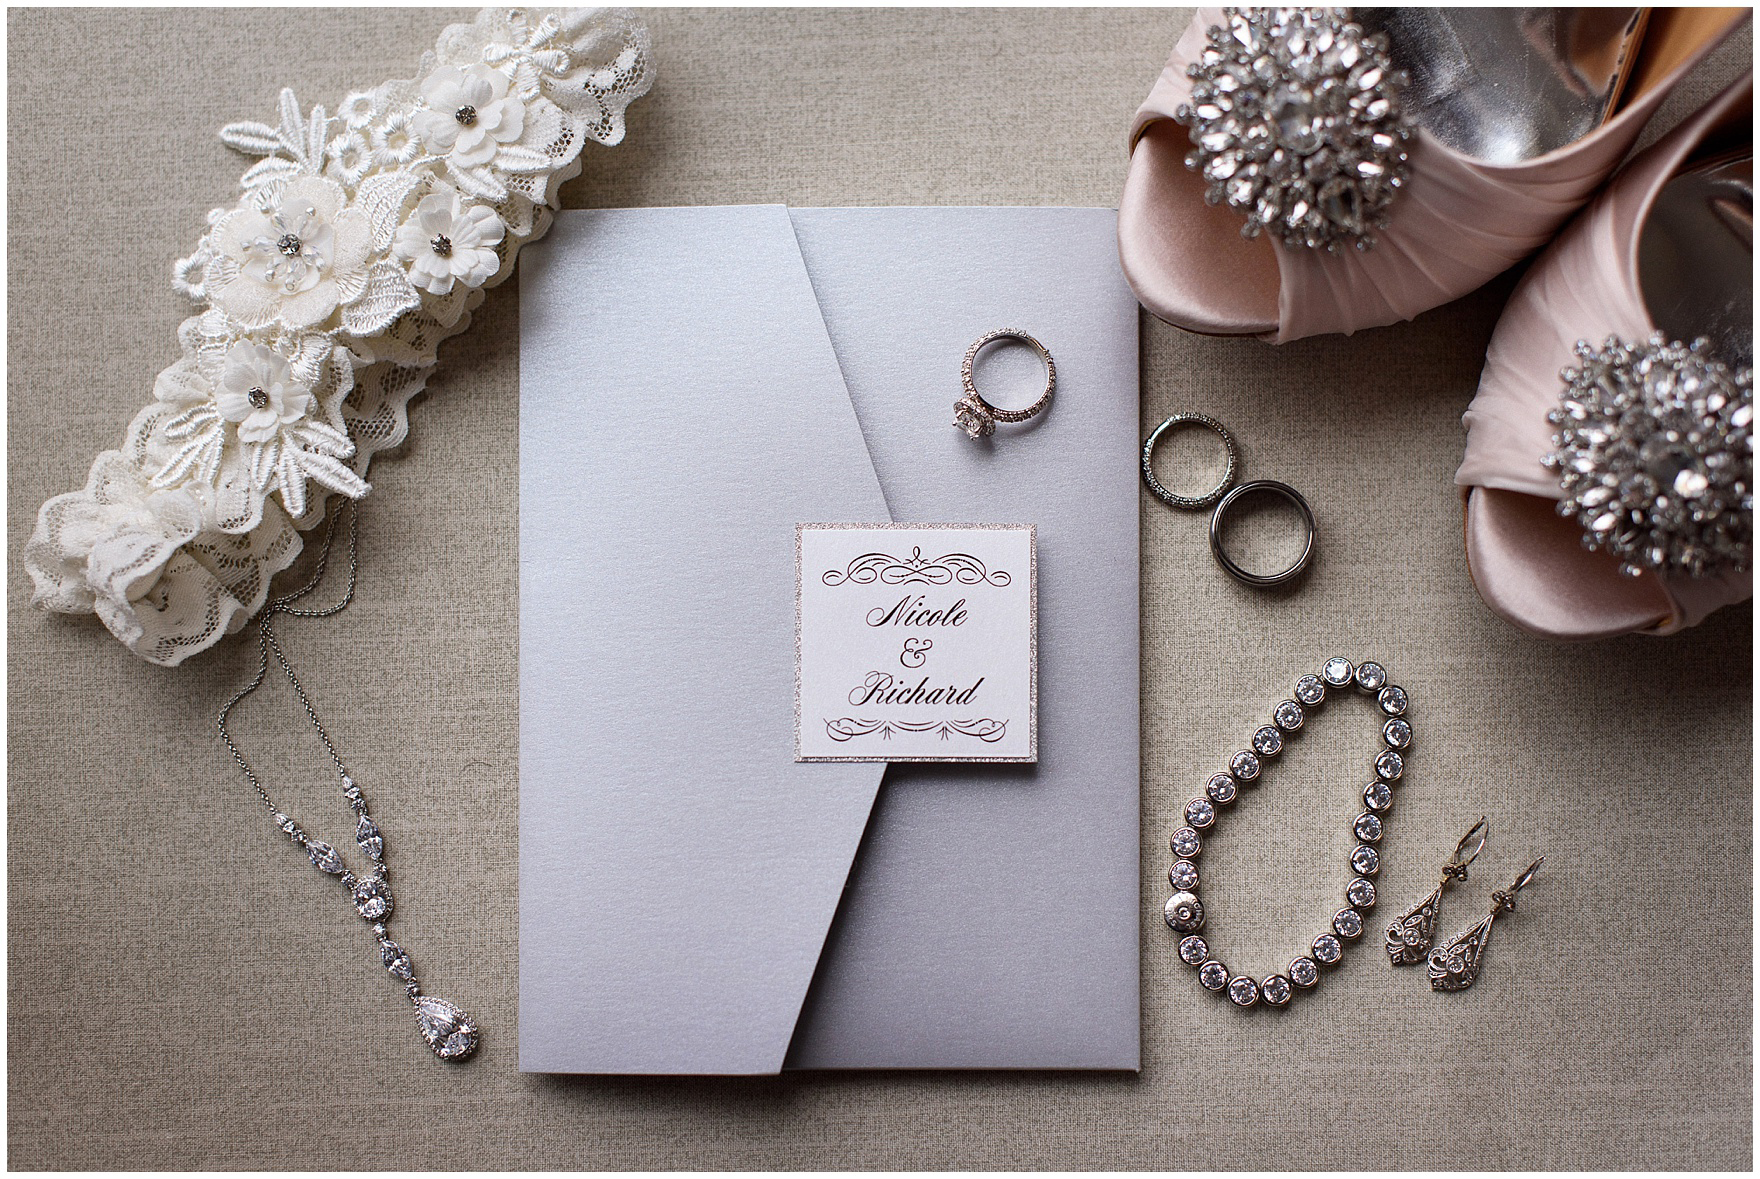 Details of the wedding invitation with the bride's accessories and jewelry for a Hotel Arista Naperville wedding.